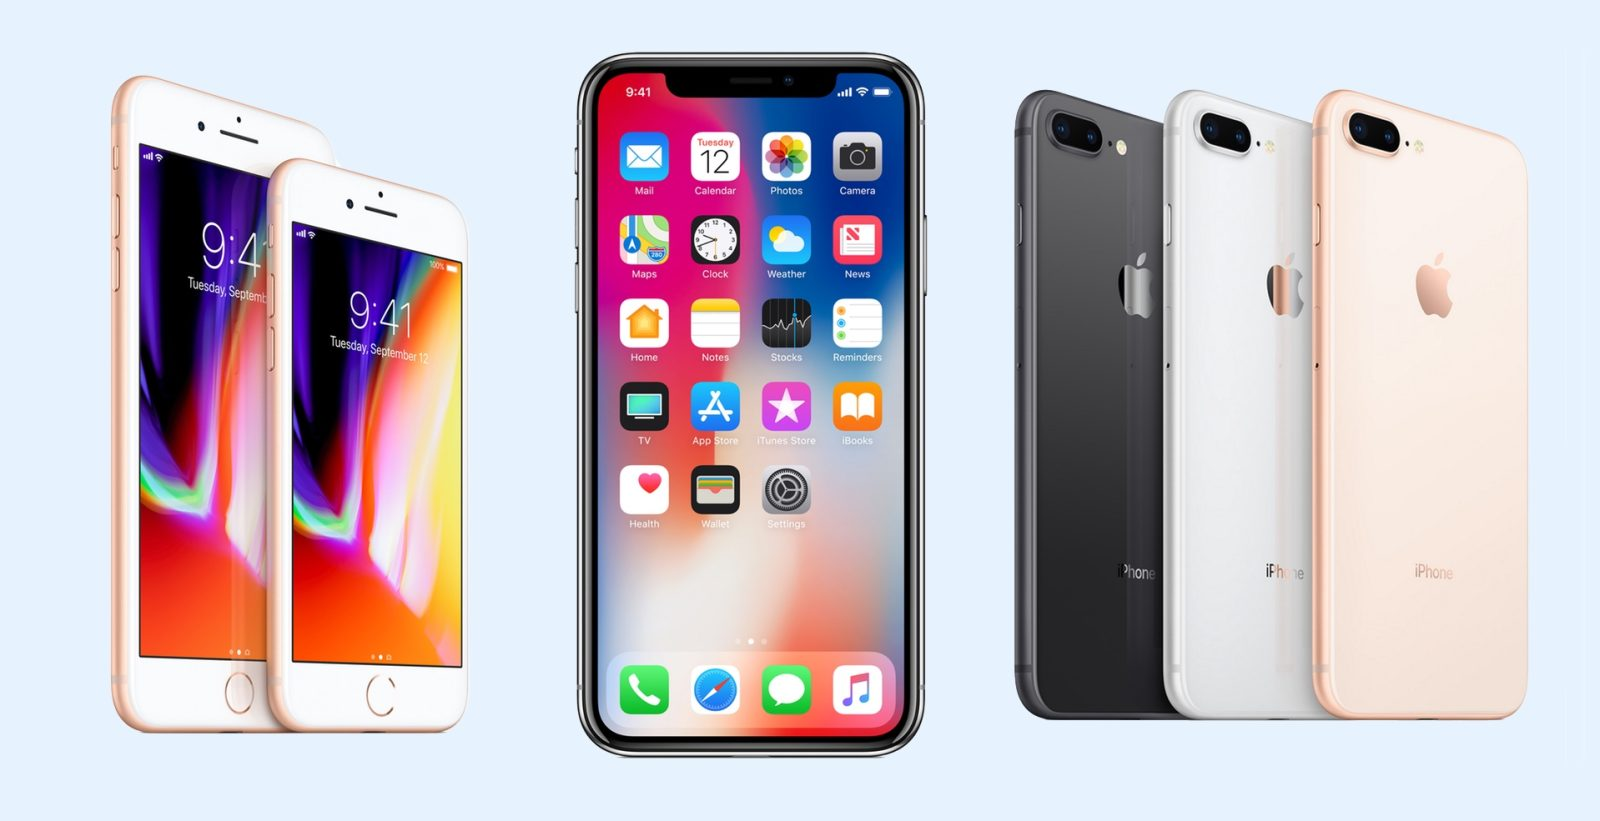 Roundup Iphone 8 Plus And X Specs Prices Compared